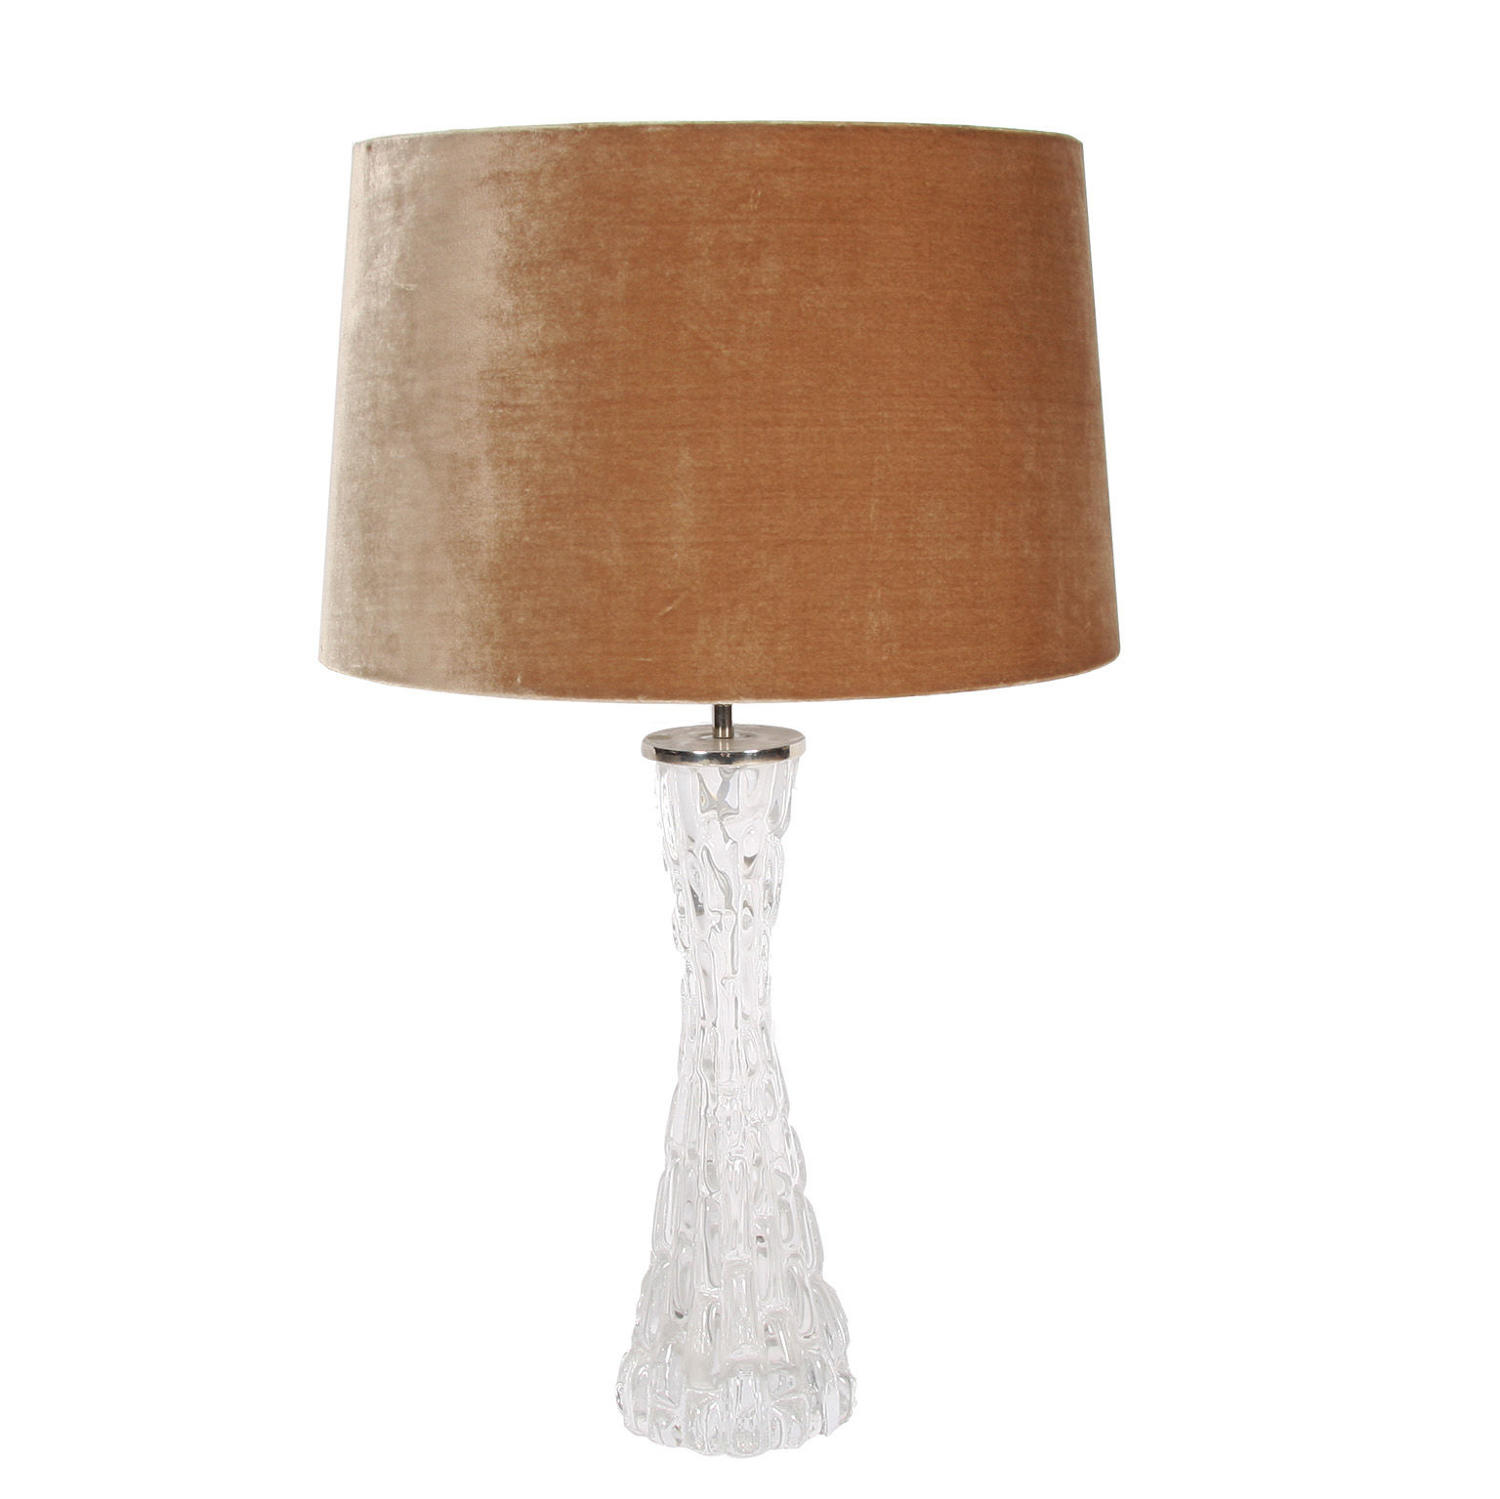 A Large Single Orrefors Glass Table Lamp